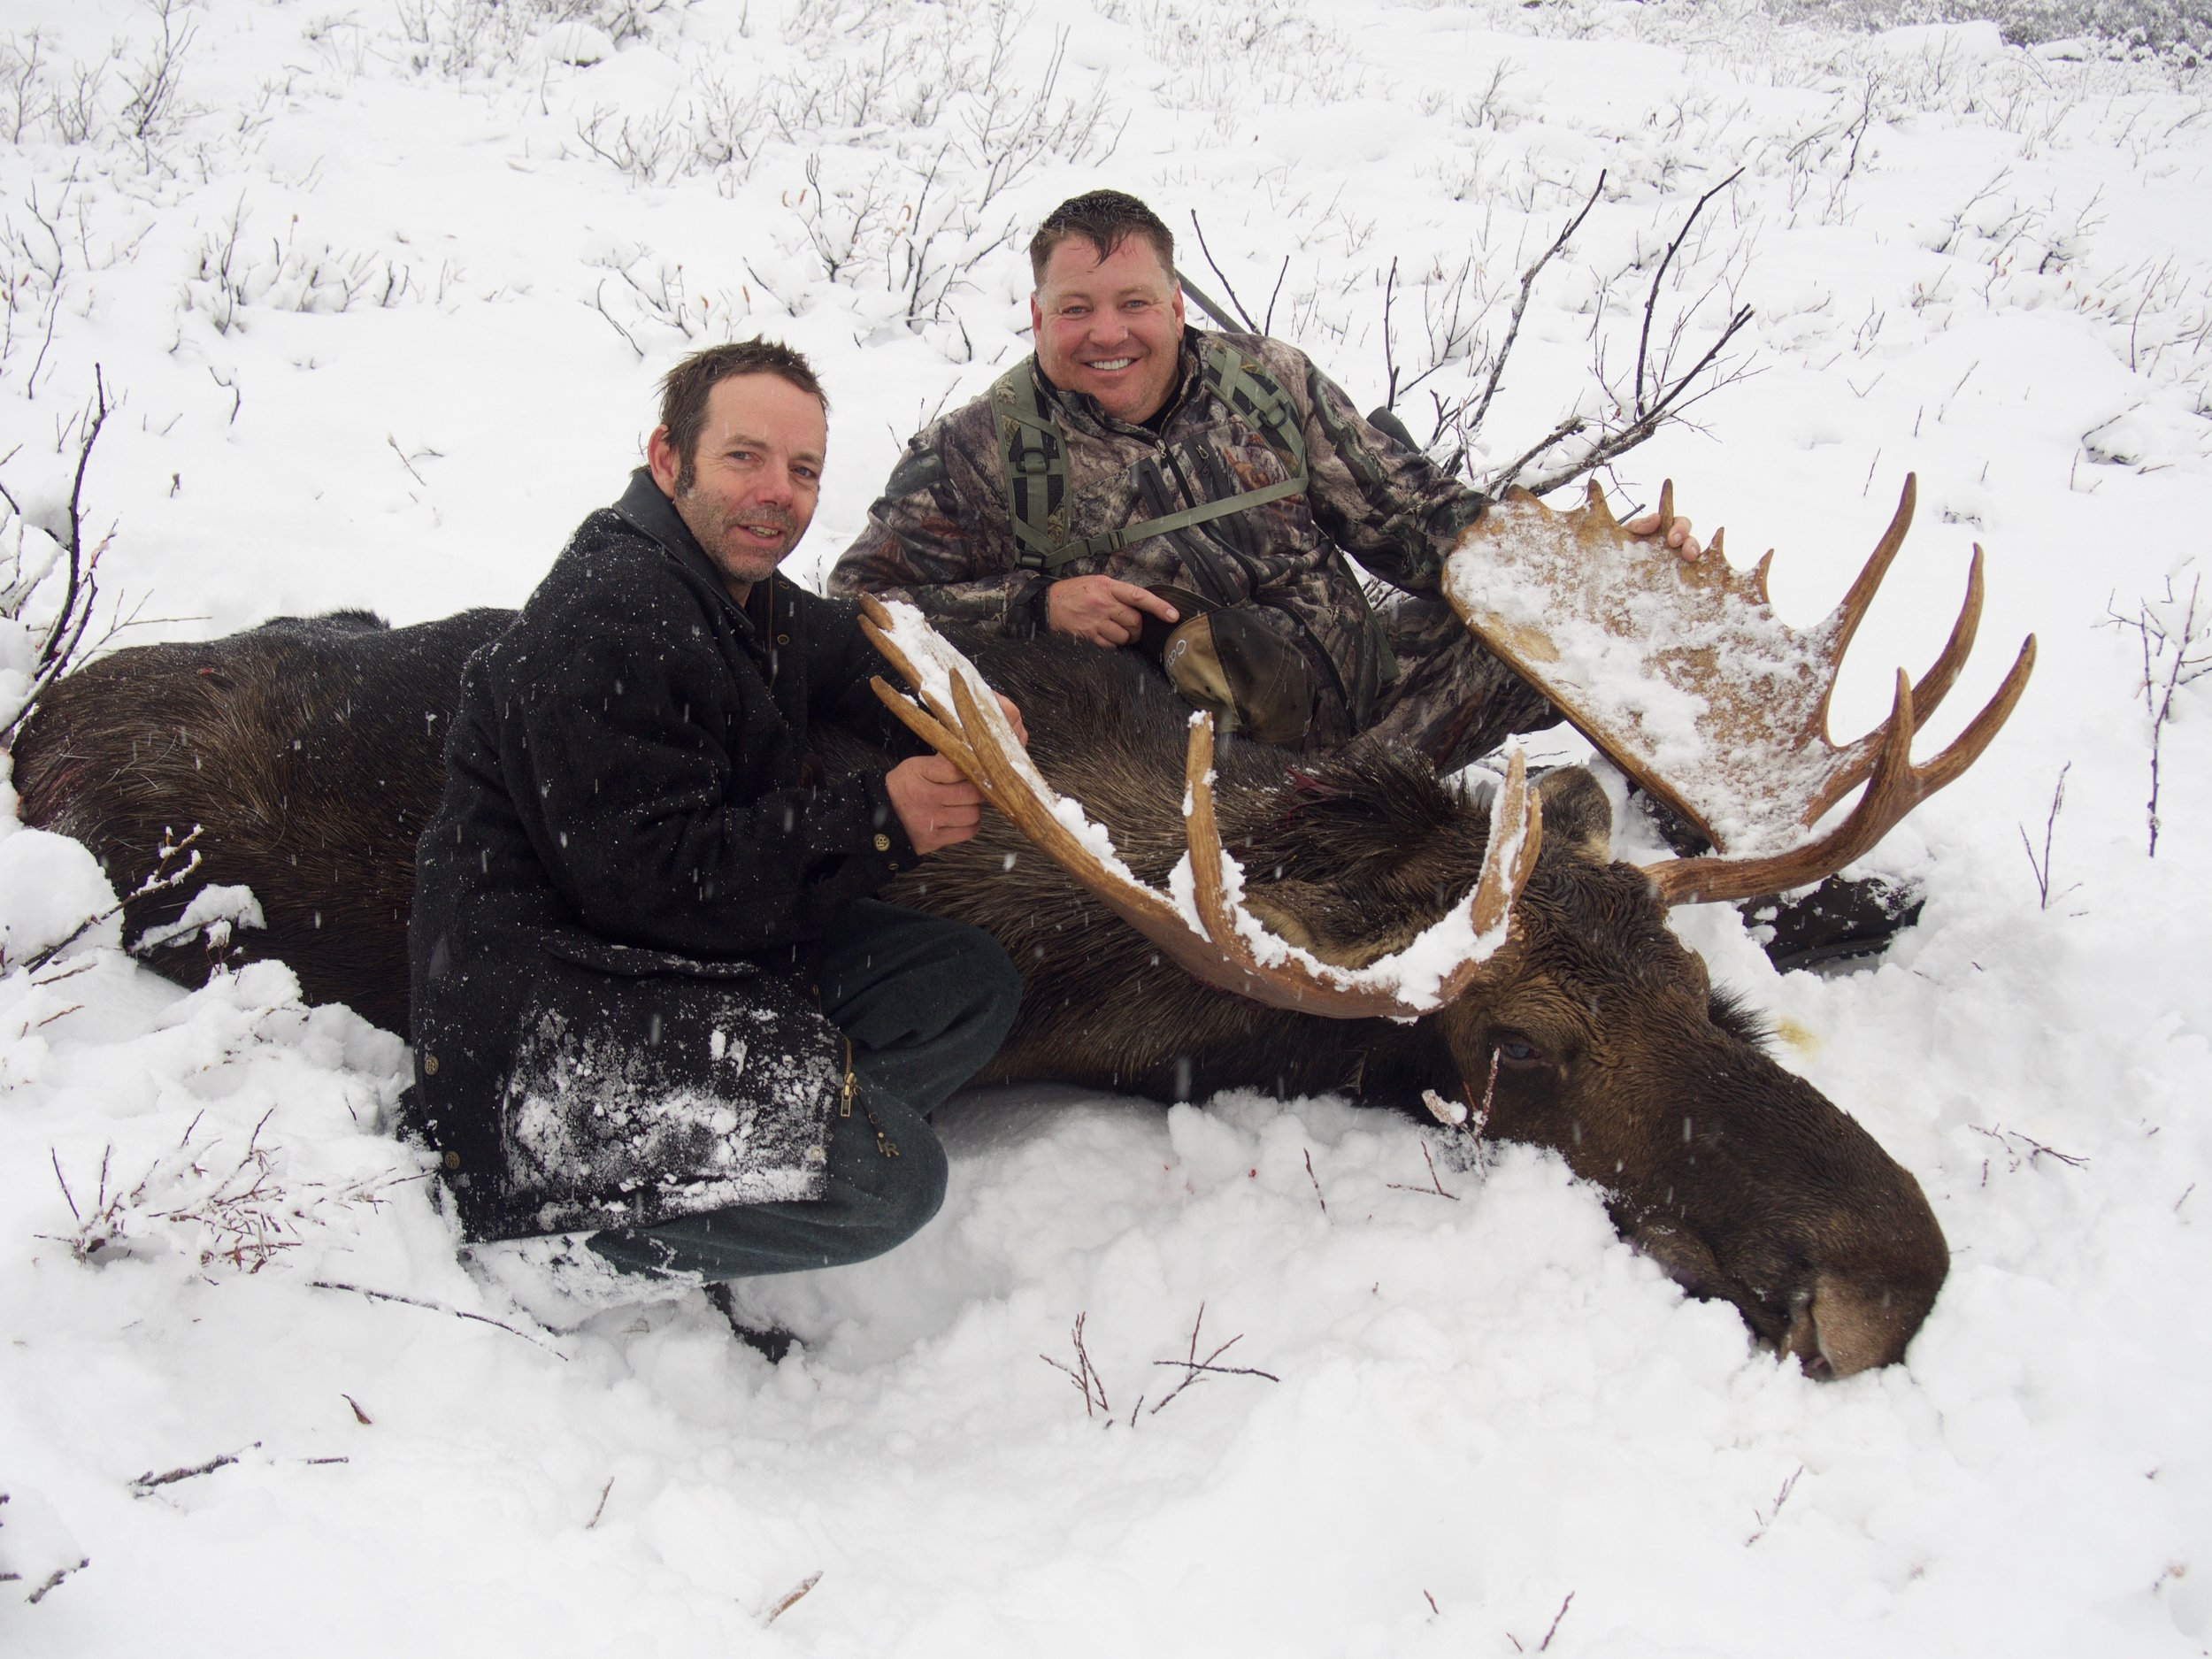 moose hunt - The Shiras Moose populations are strong with Bulls from 45 to 50 in.